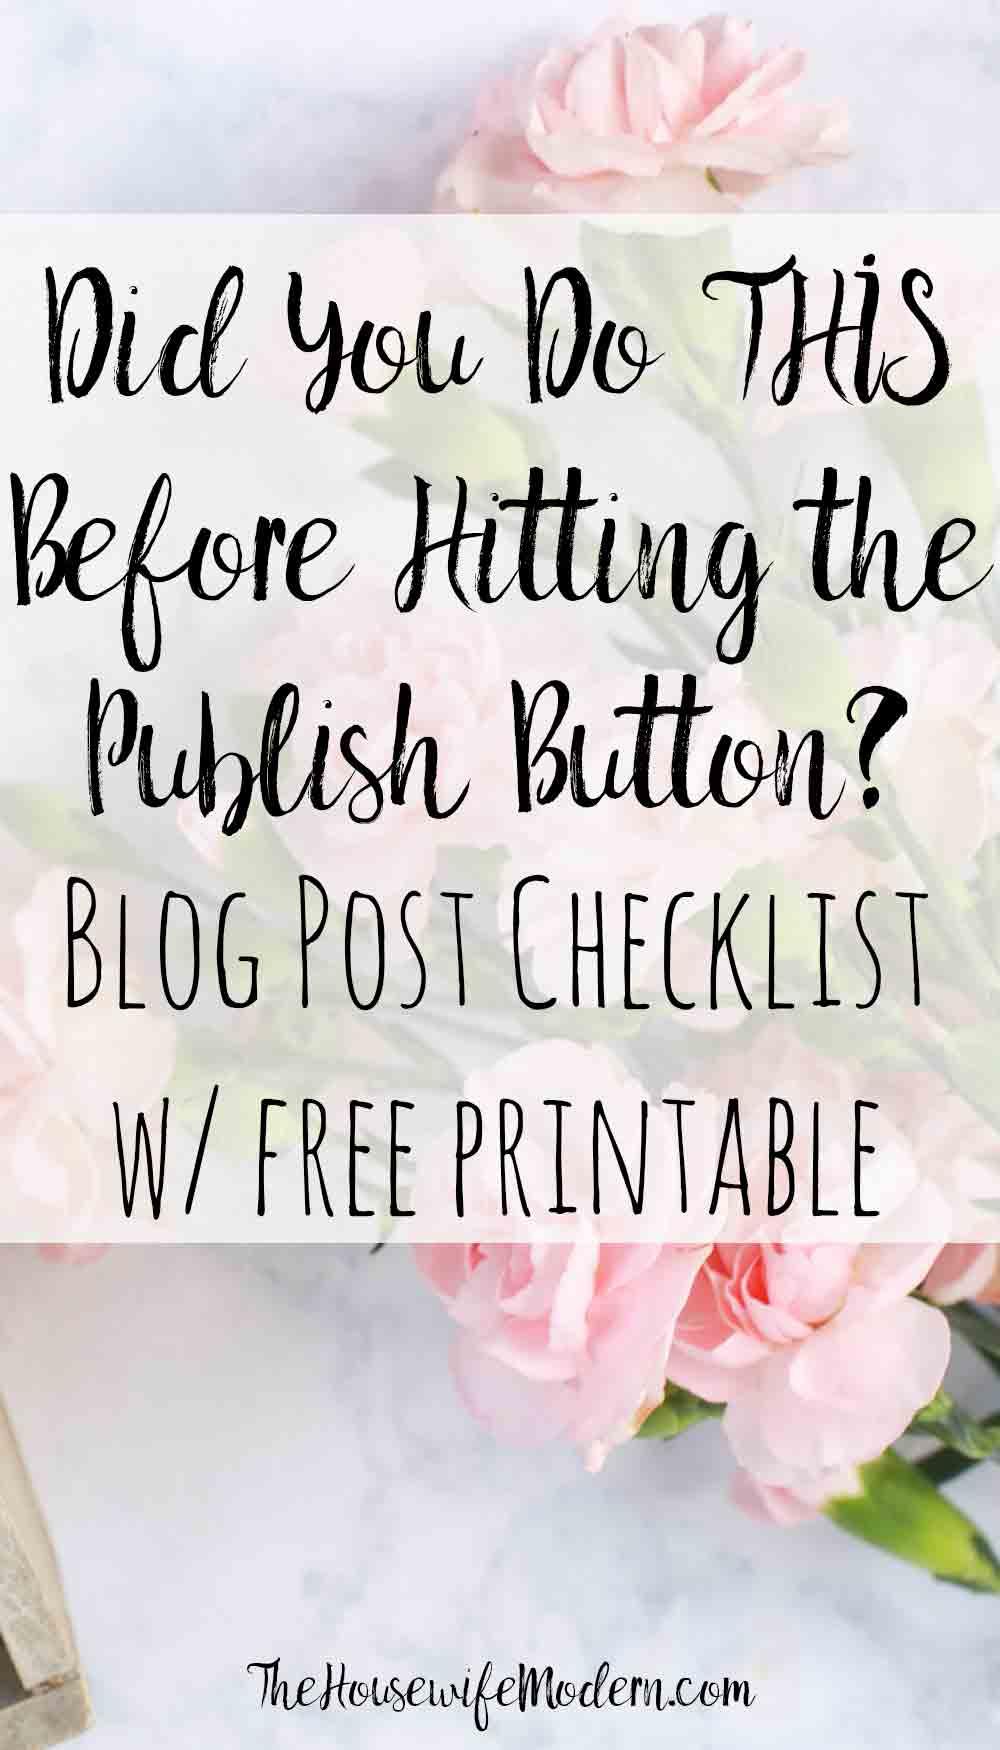 Blog Post Checklist: What Every Blog Post Should Have. Detailed checklist of exactly what to check before you publish any blog post. Plus free printable blog post checklist.